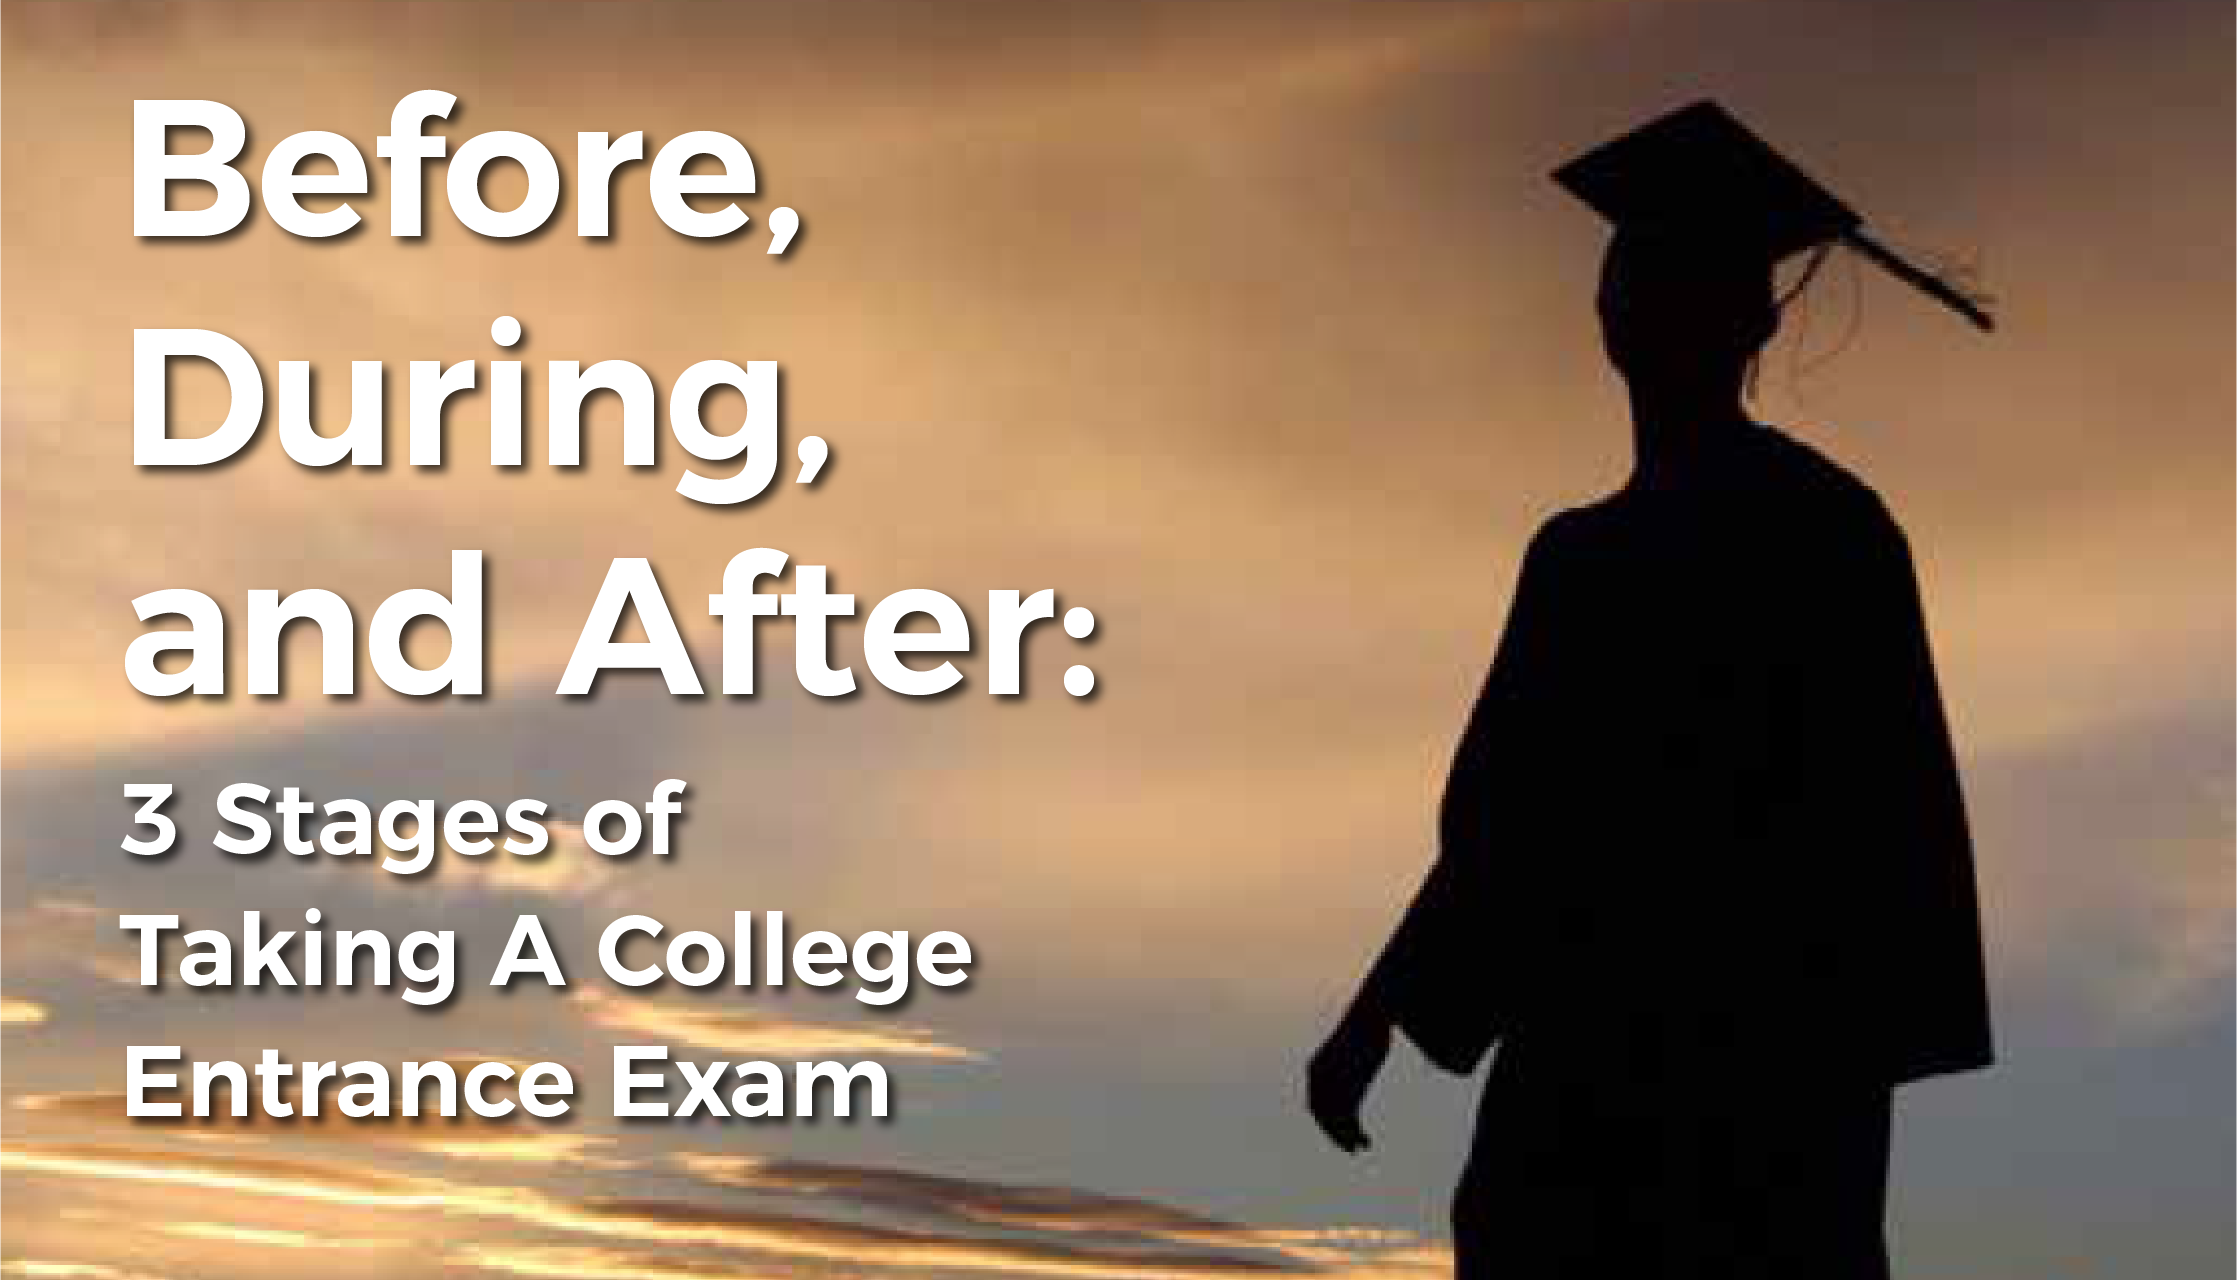 3 Stages of Taking a College Entrance Exam